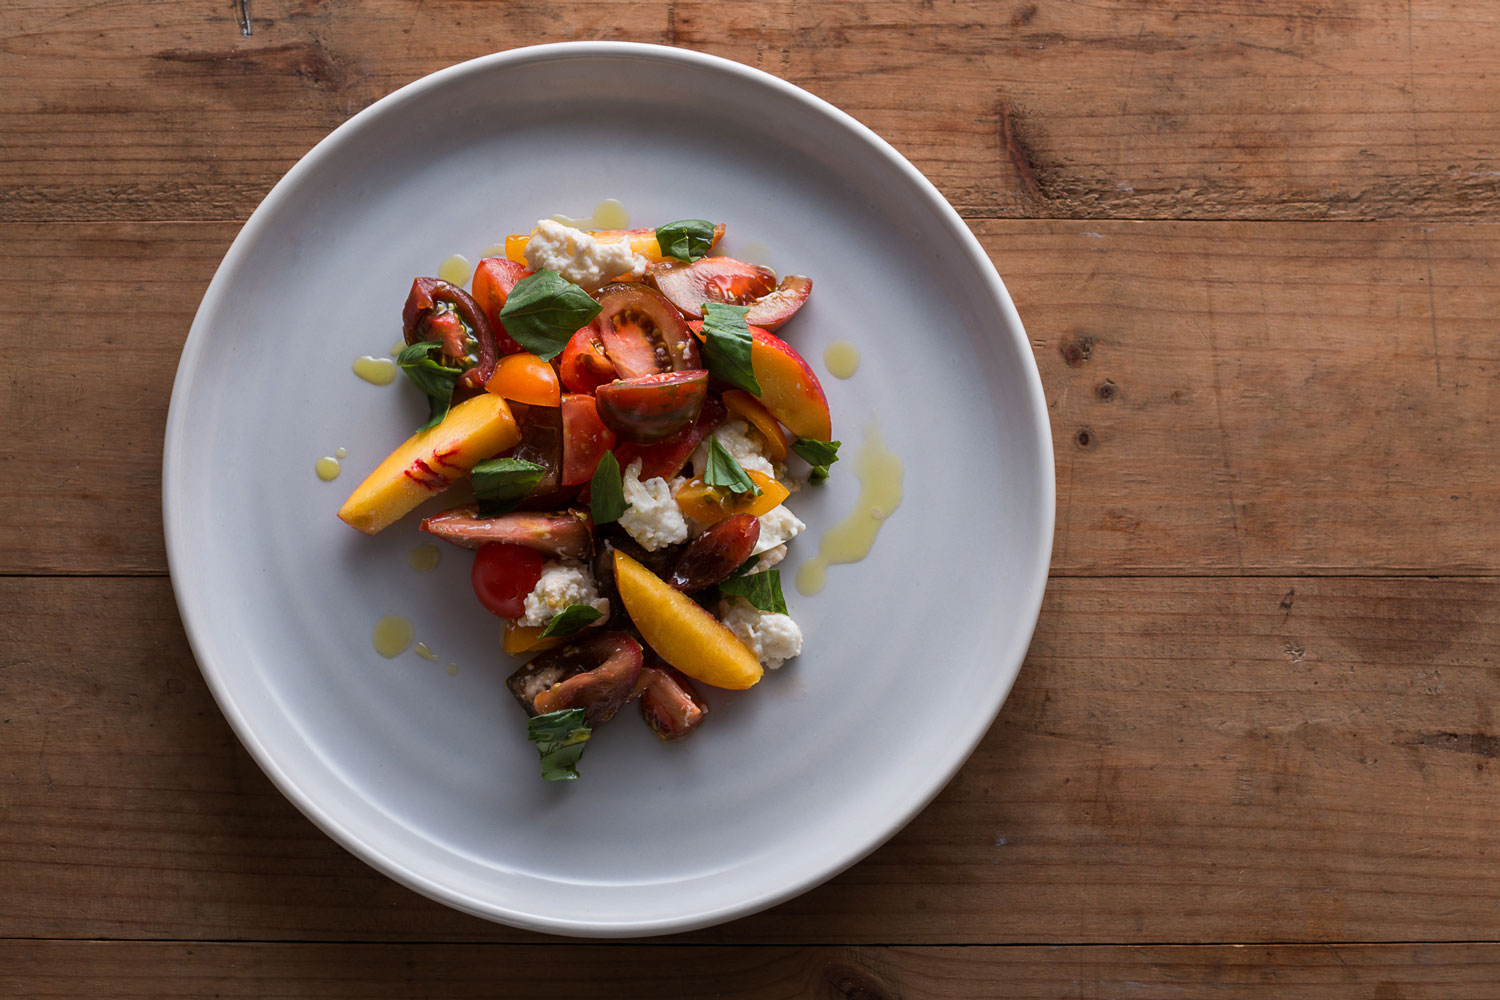 photograph-of-pot-and-pan-culinary-tailoring-tomato-salad-taken-by-sarah-anderson-photography.jpg